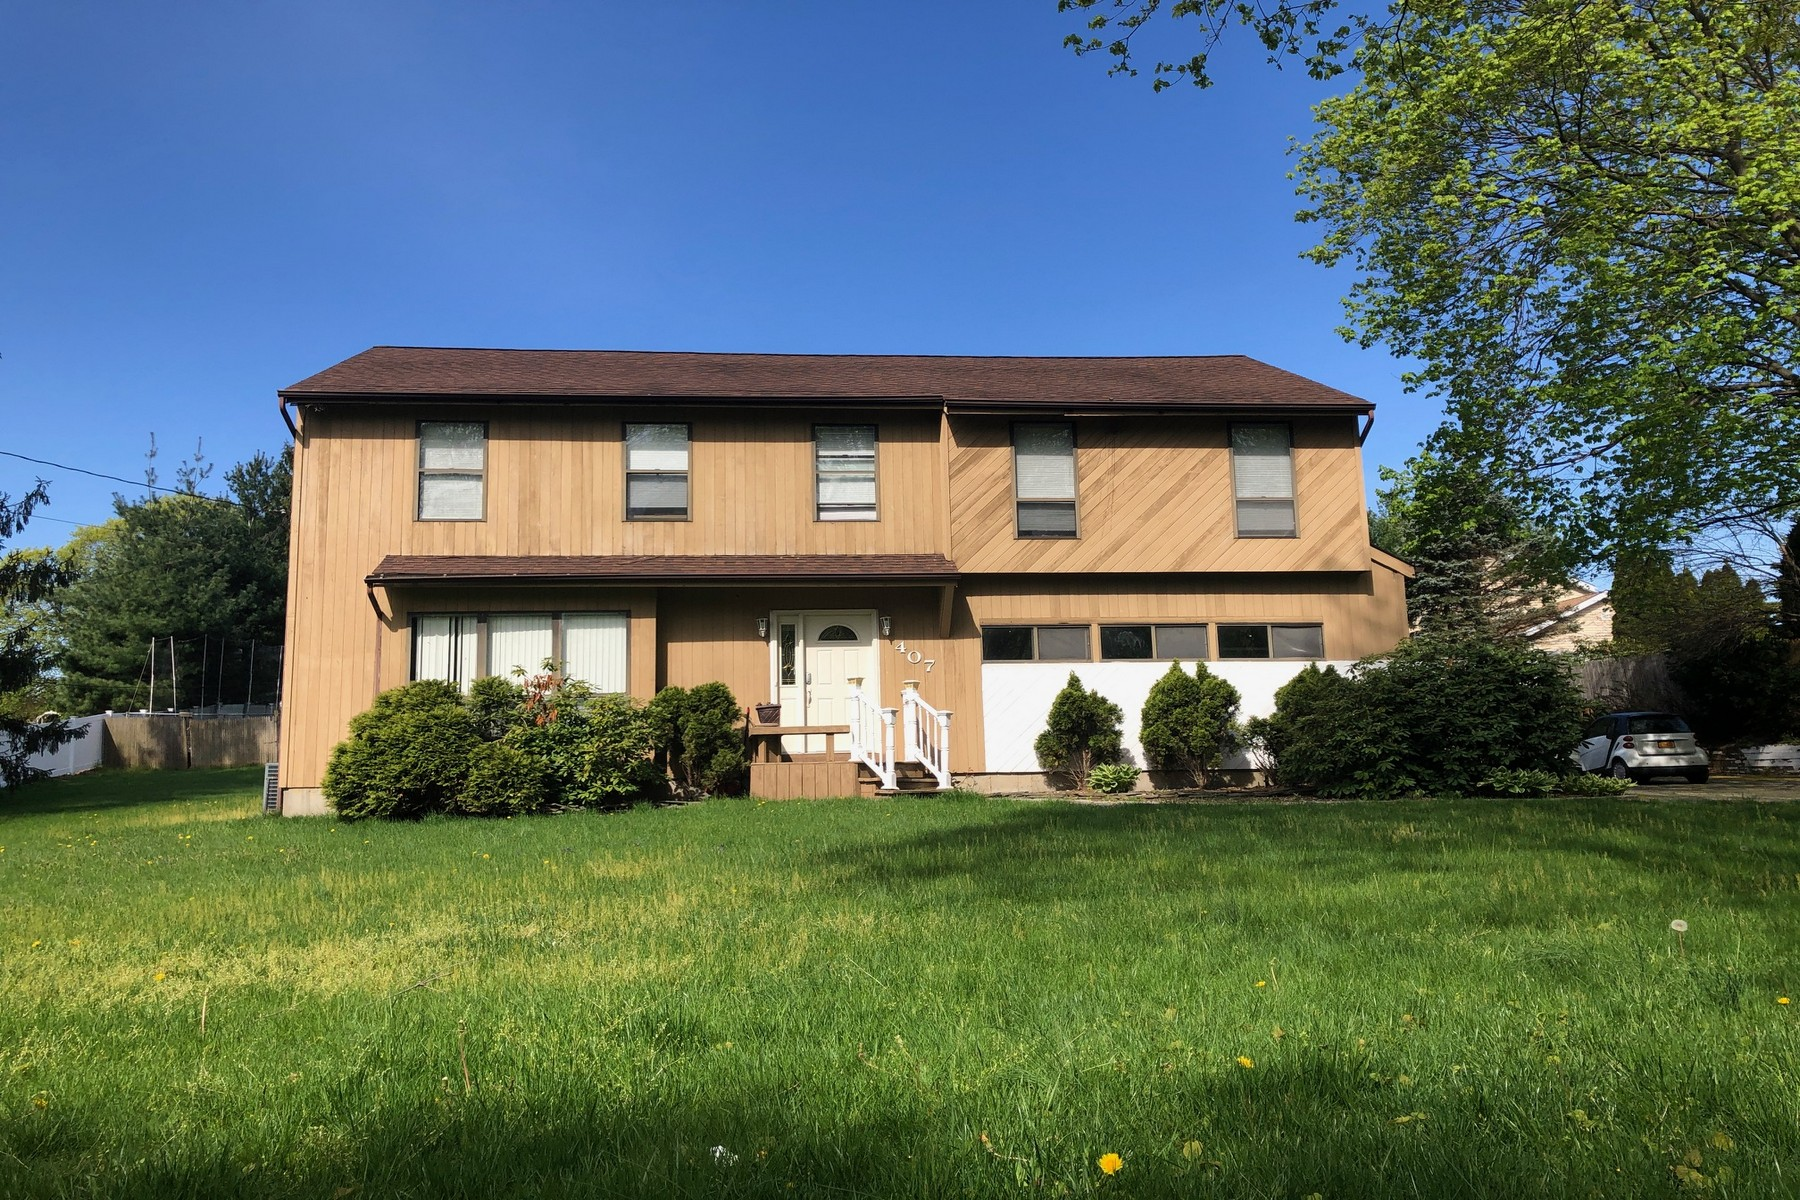 Single Family Homes for Active at Commack 407 Townline Rd Commack, New York 11725 United States